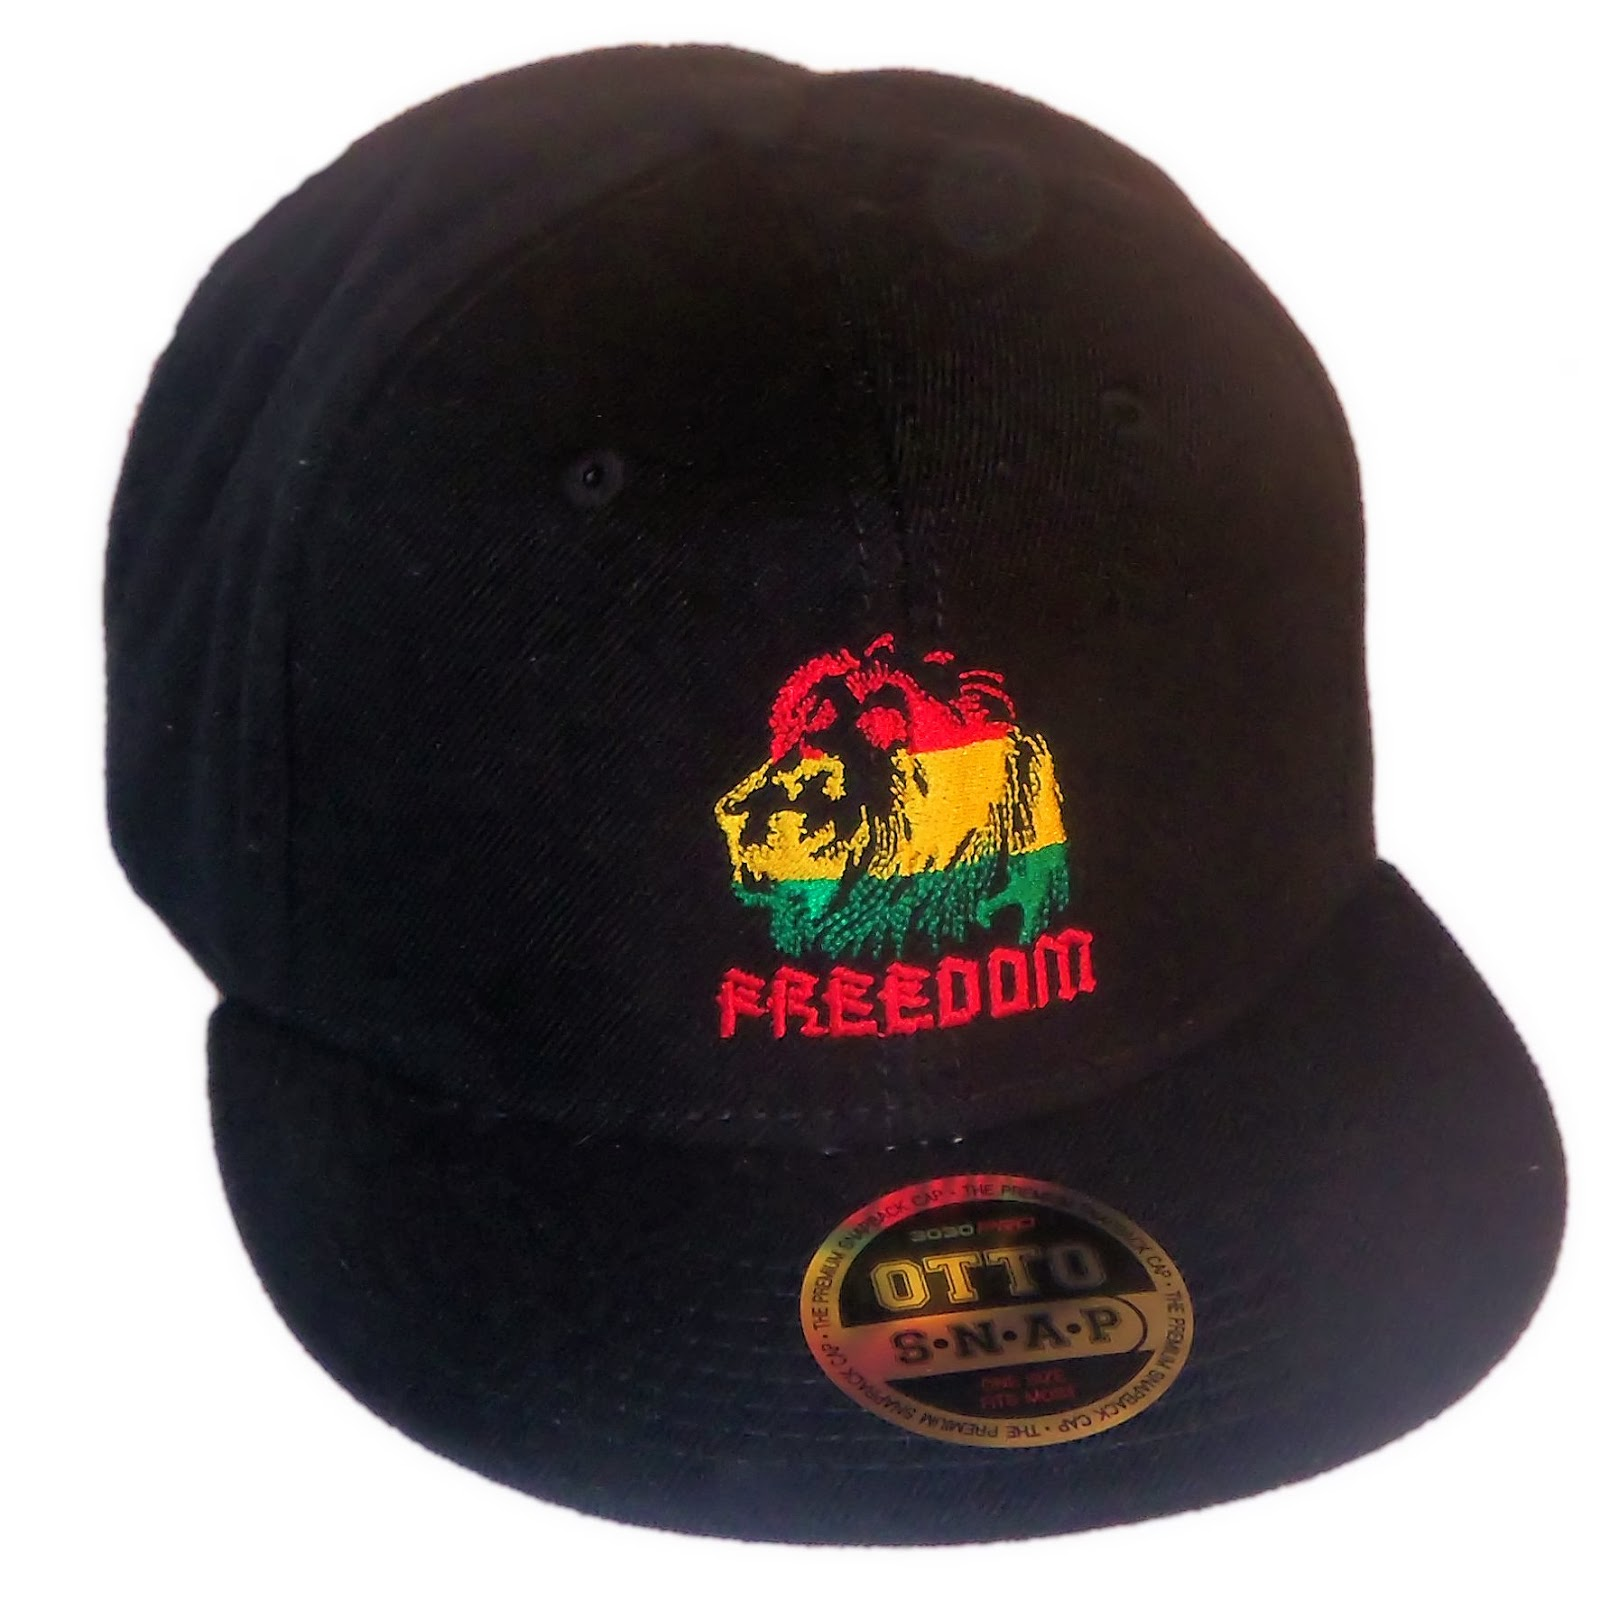 Freedom Rasta Flat Bill Snapback Cap From Edge SST